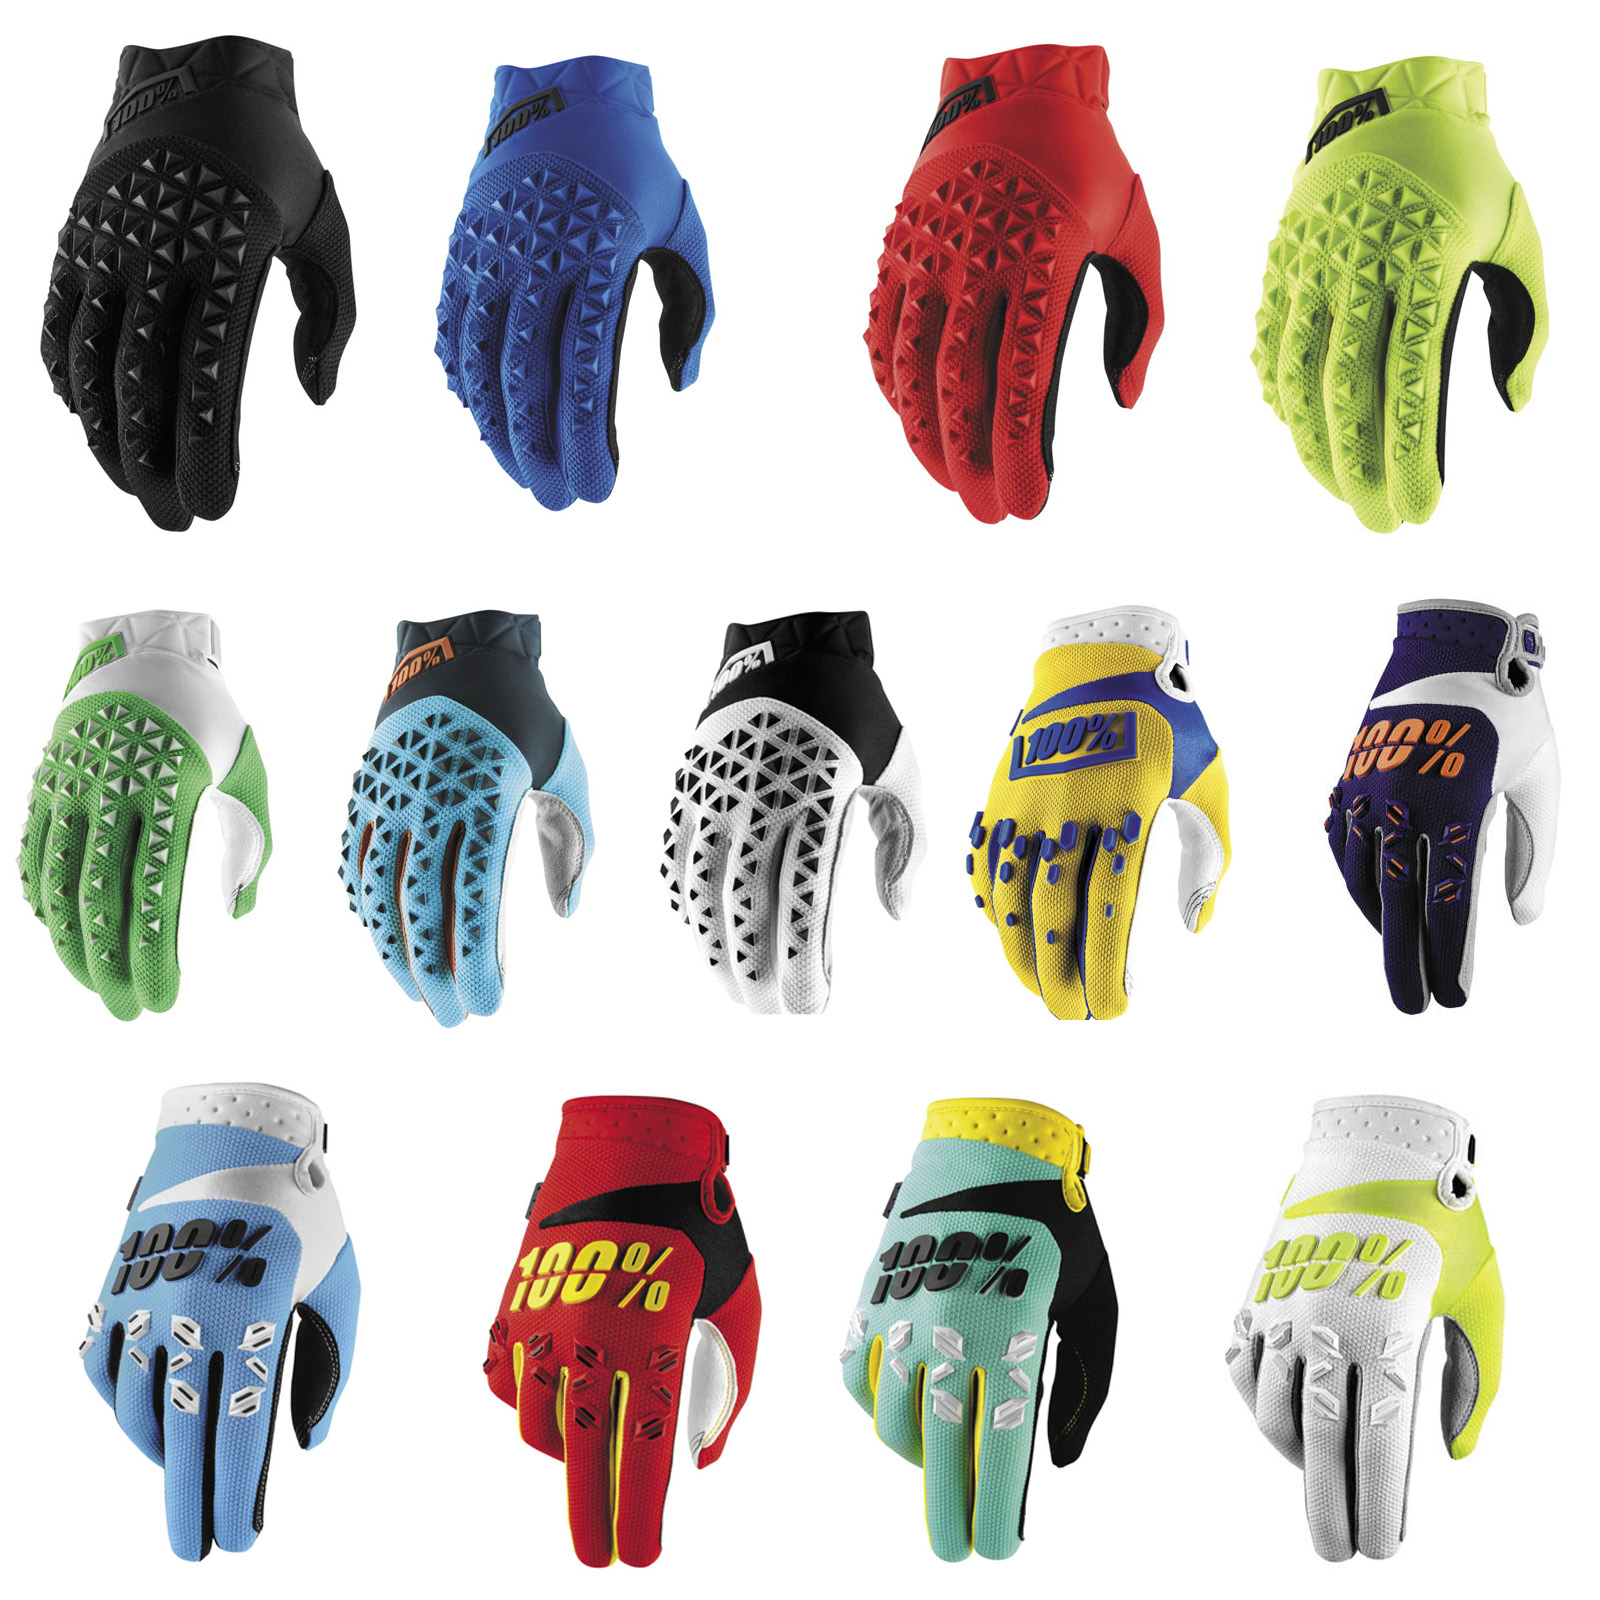 WHITE STEEL 2019 100/% ITRACK MOTOCROSS MX BIKE GLOVES GRAY